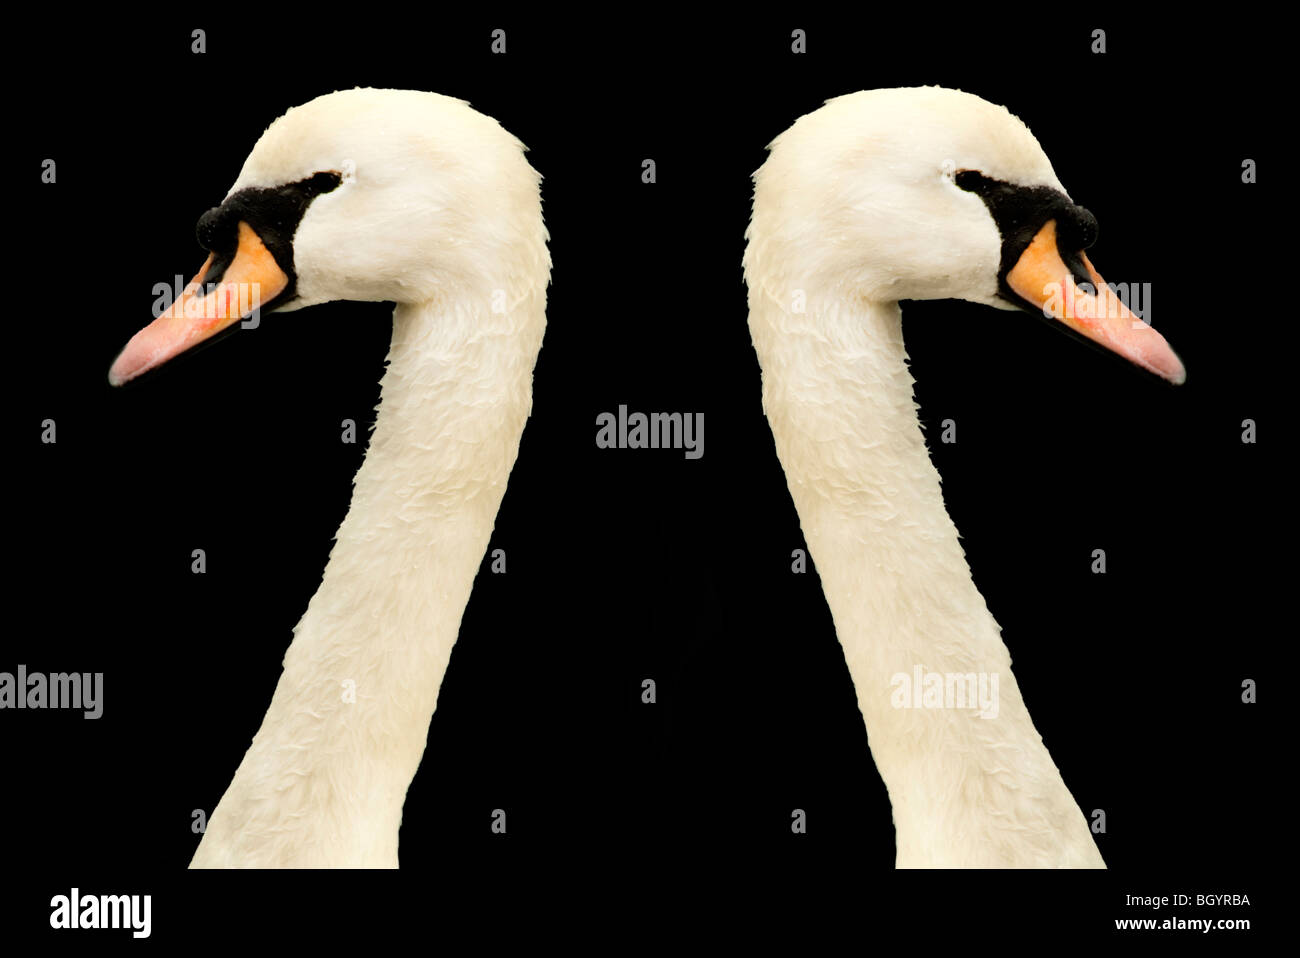 two swans heads looking in opposite directions - Stock Image